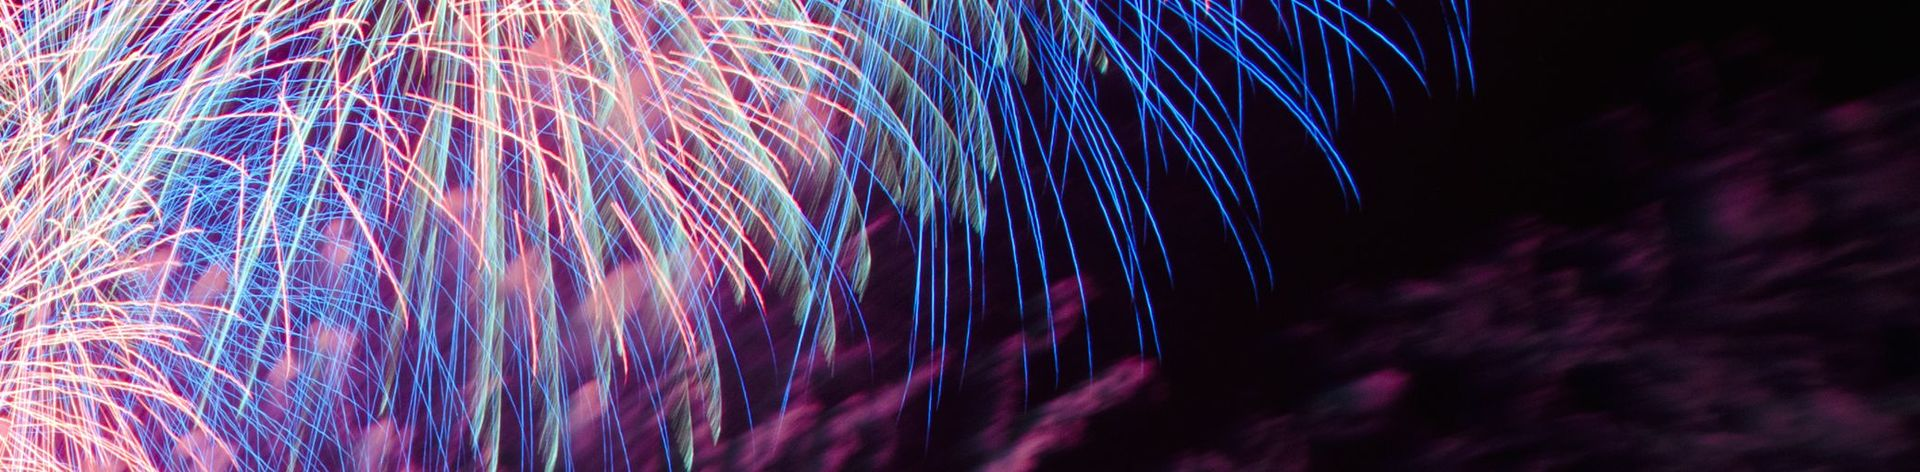 KCs Fireworks Displays | Fireworks Qld & NSW